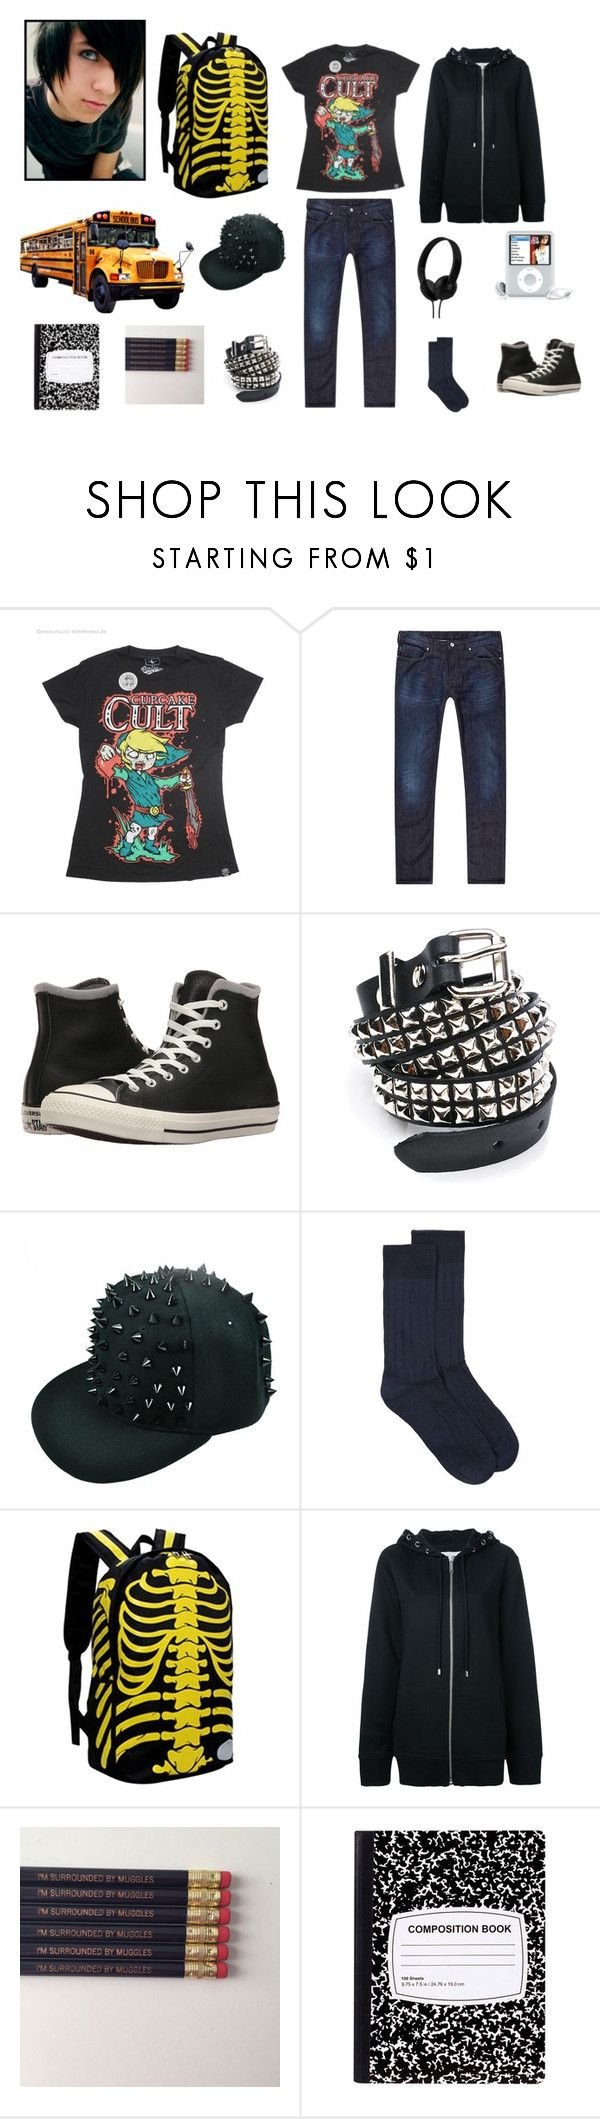 Emo Schoolboy outfit by ghostmanl on Polyvore featuring Armani Jeans, Topman, Converse, Public School, Funk Plus, Skullcandy, men's fashion and menswear